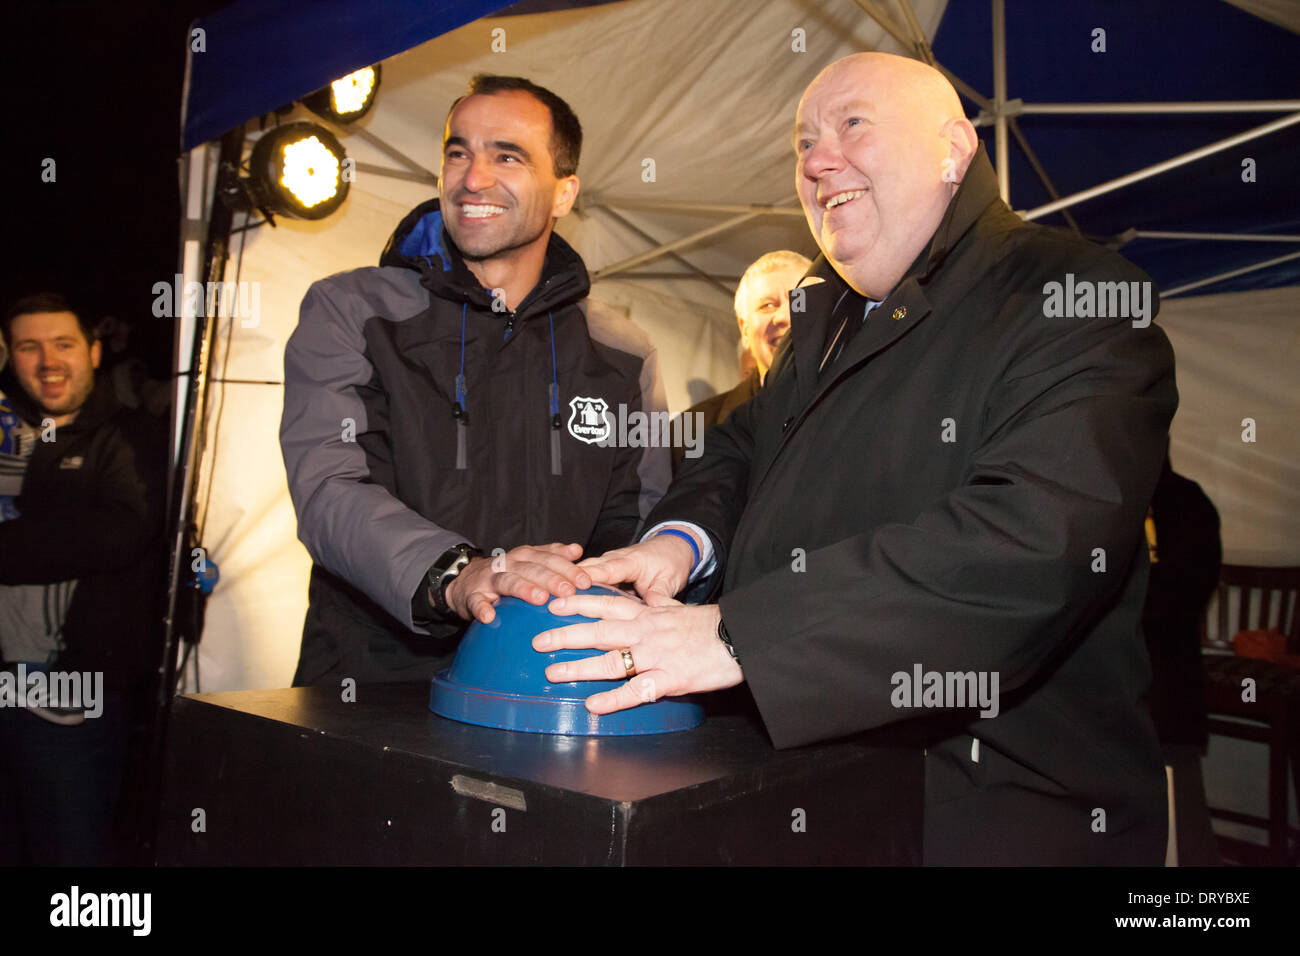 Liverpool, UK. 4th February 2014. Everton manager Roberto Martinez and Liverpool Mayor Joe Anderson switch on a new Everton crest projection in Liverpool. Credit:  Adam Vaughan/Alamy Live News - Stock Image